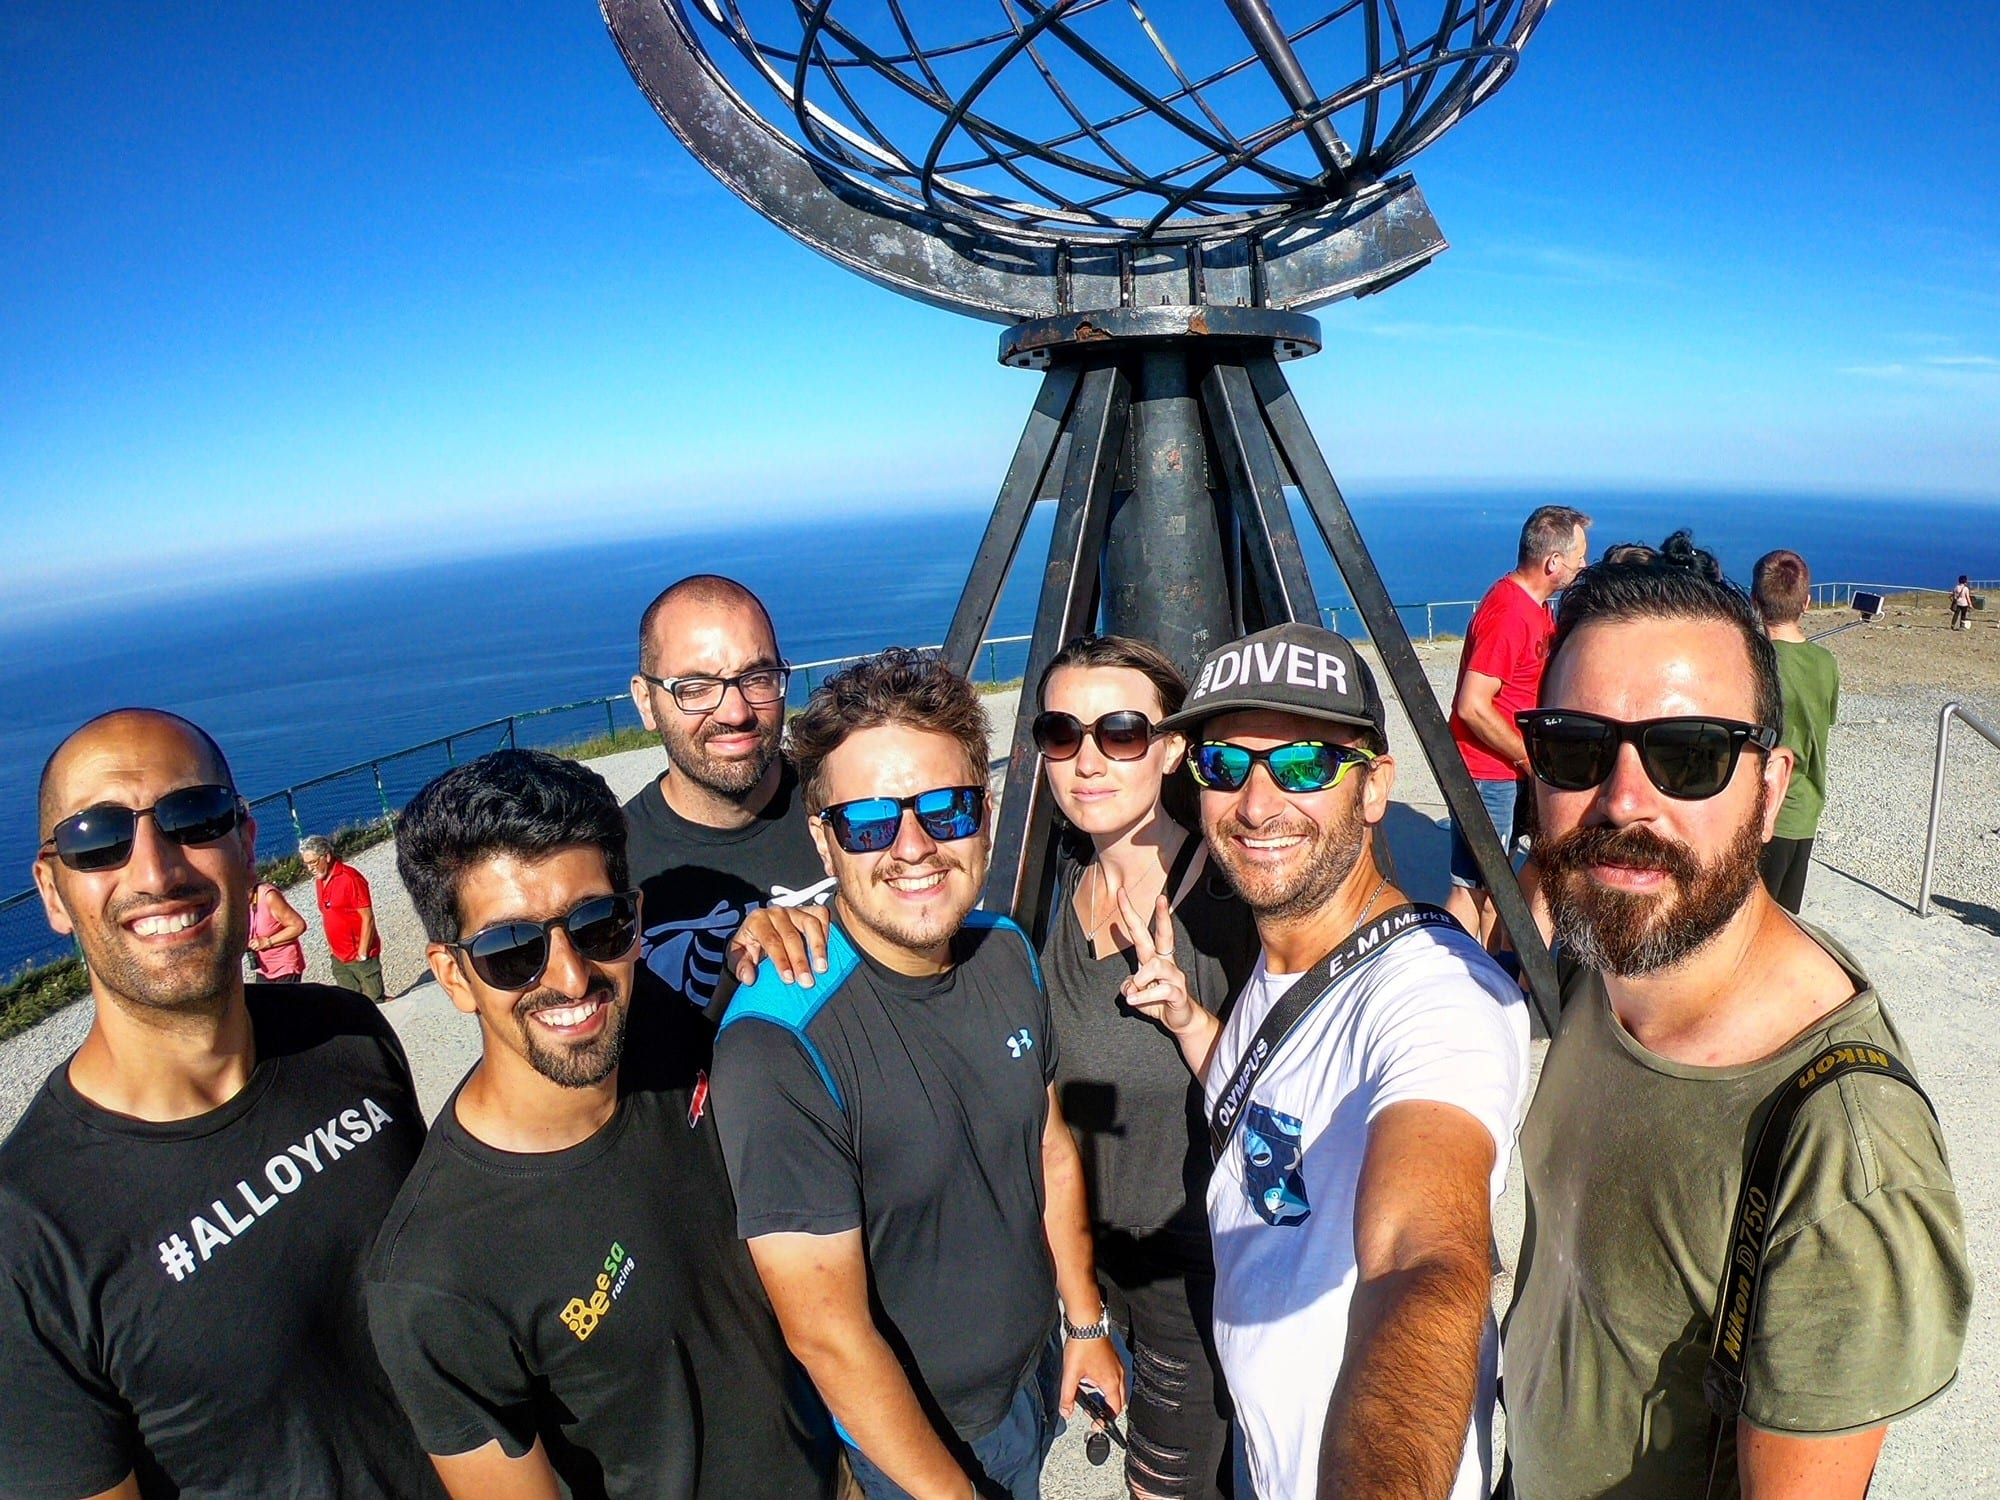 Charge to the Circle team at Nordkapp summer challenges